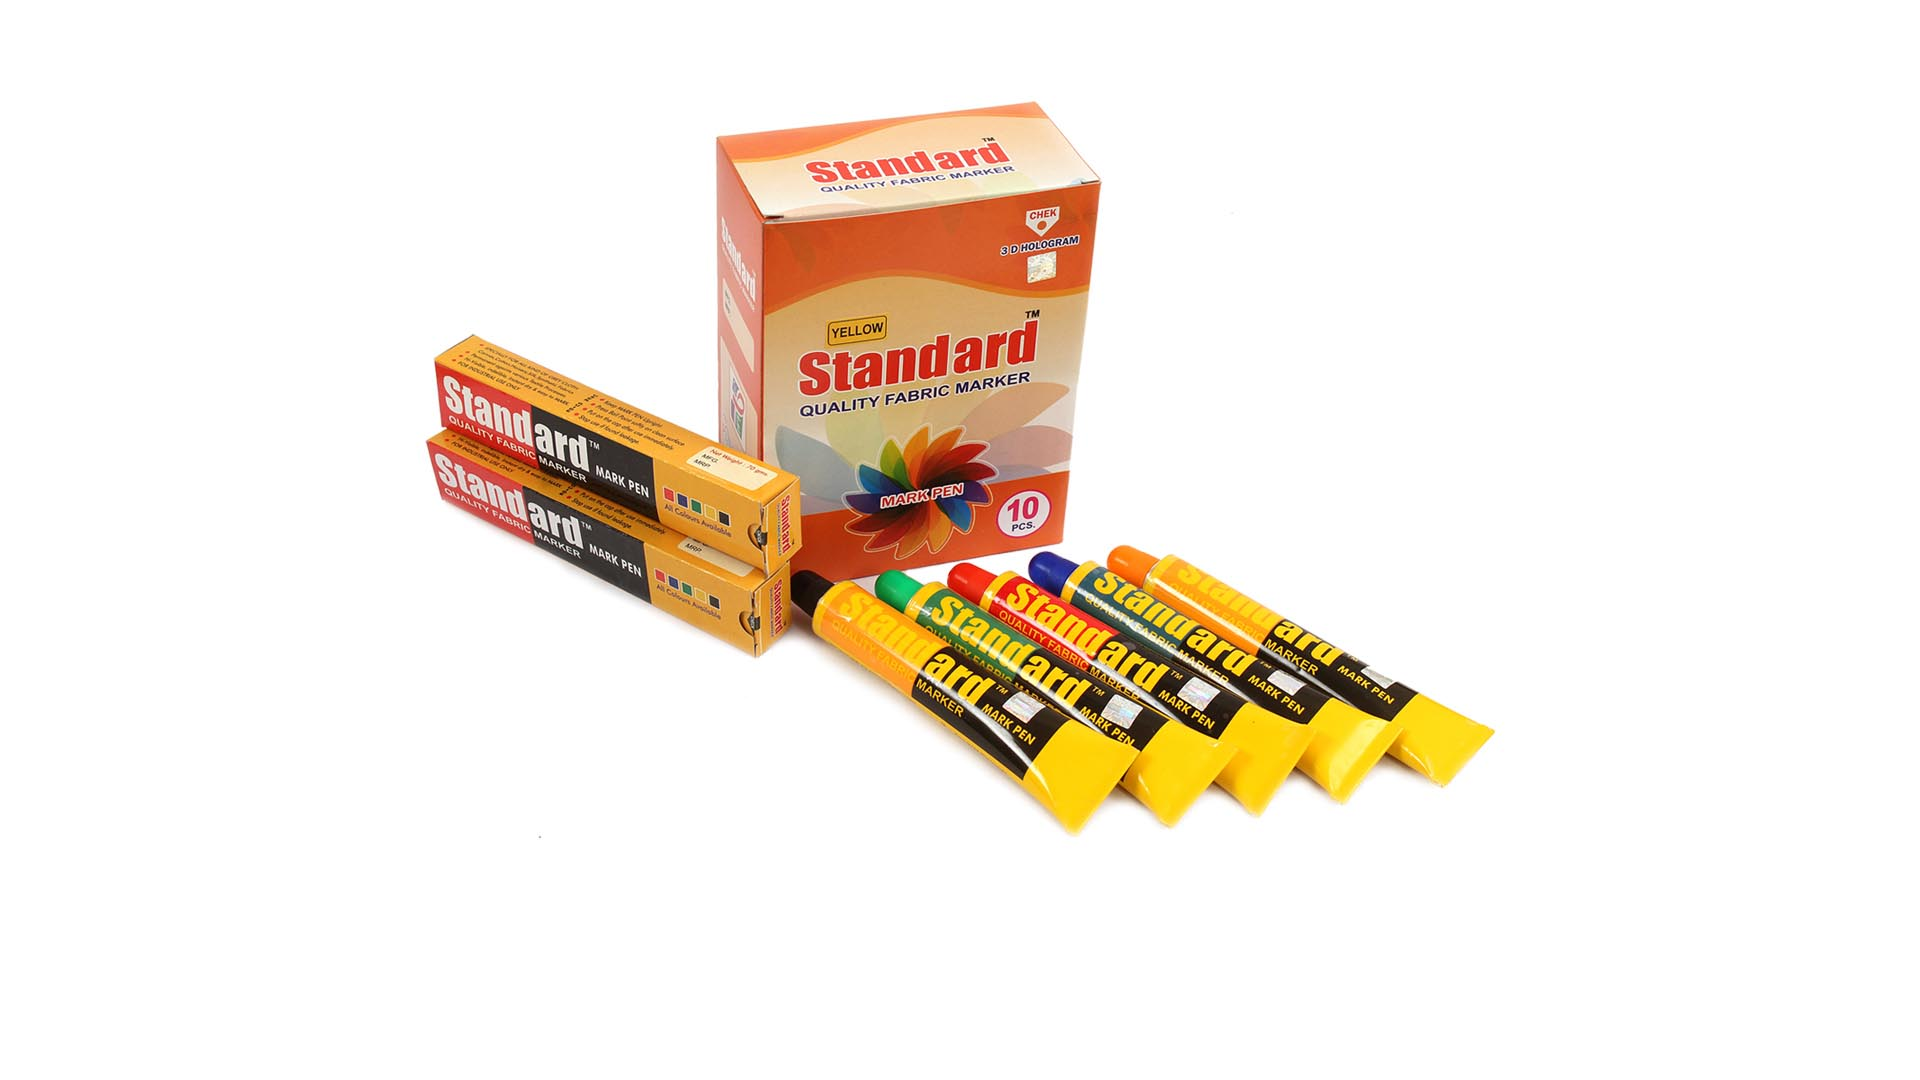 Standard Fabric Marker & Textile Marker - Red